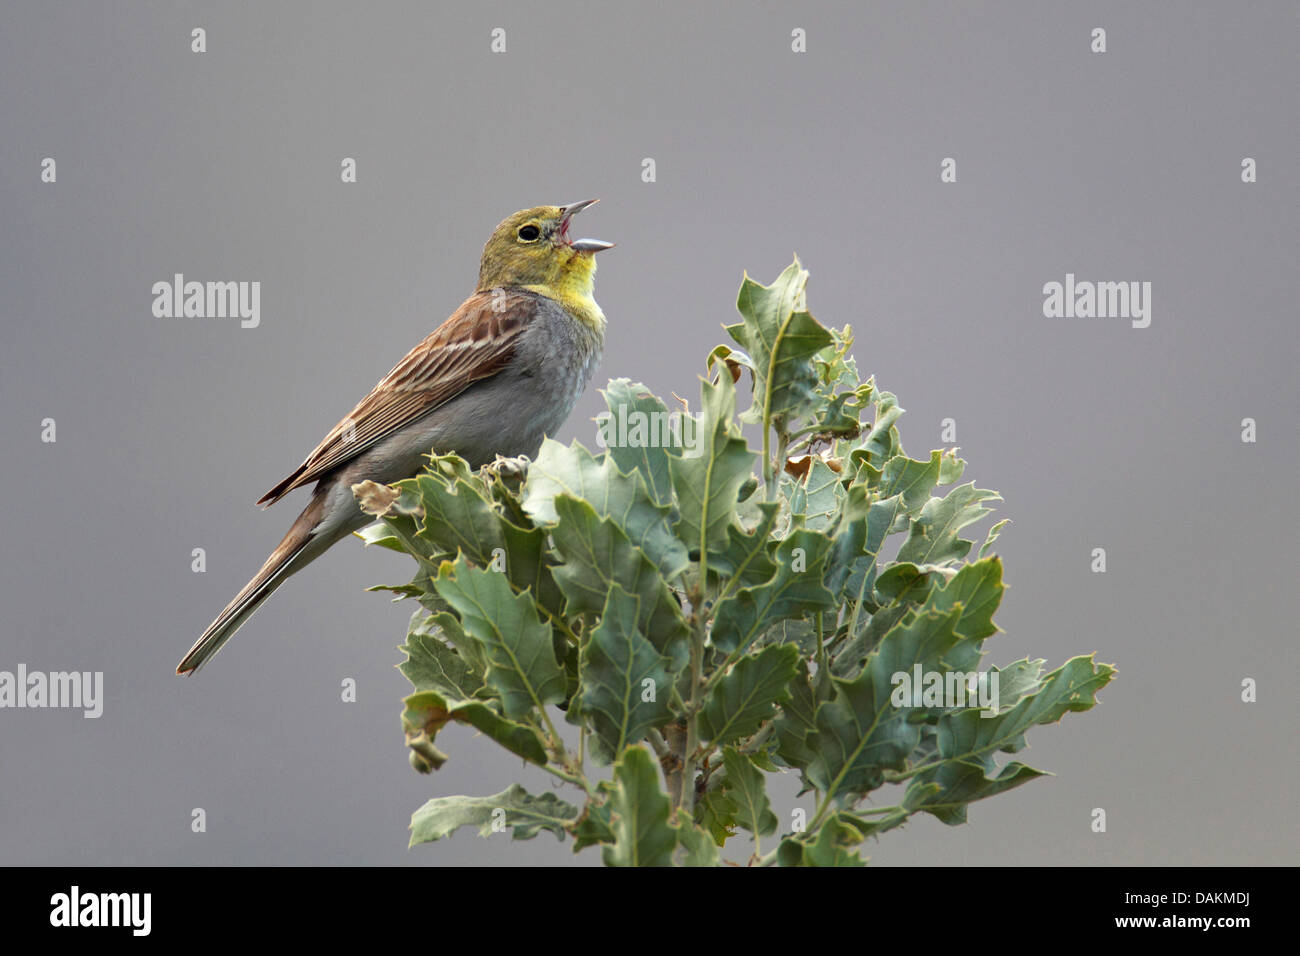 cinereous bunting (Emberiza cineracea), male sings from the top a an oak tree, Greece, Lesbos - Stock Image